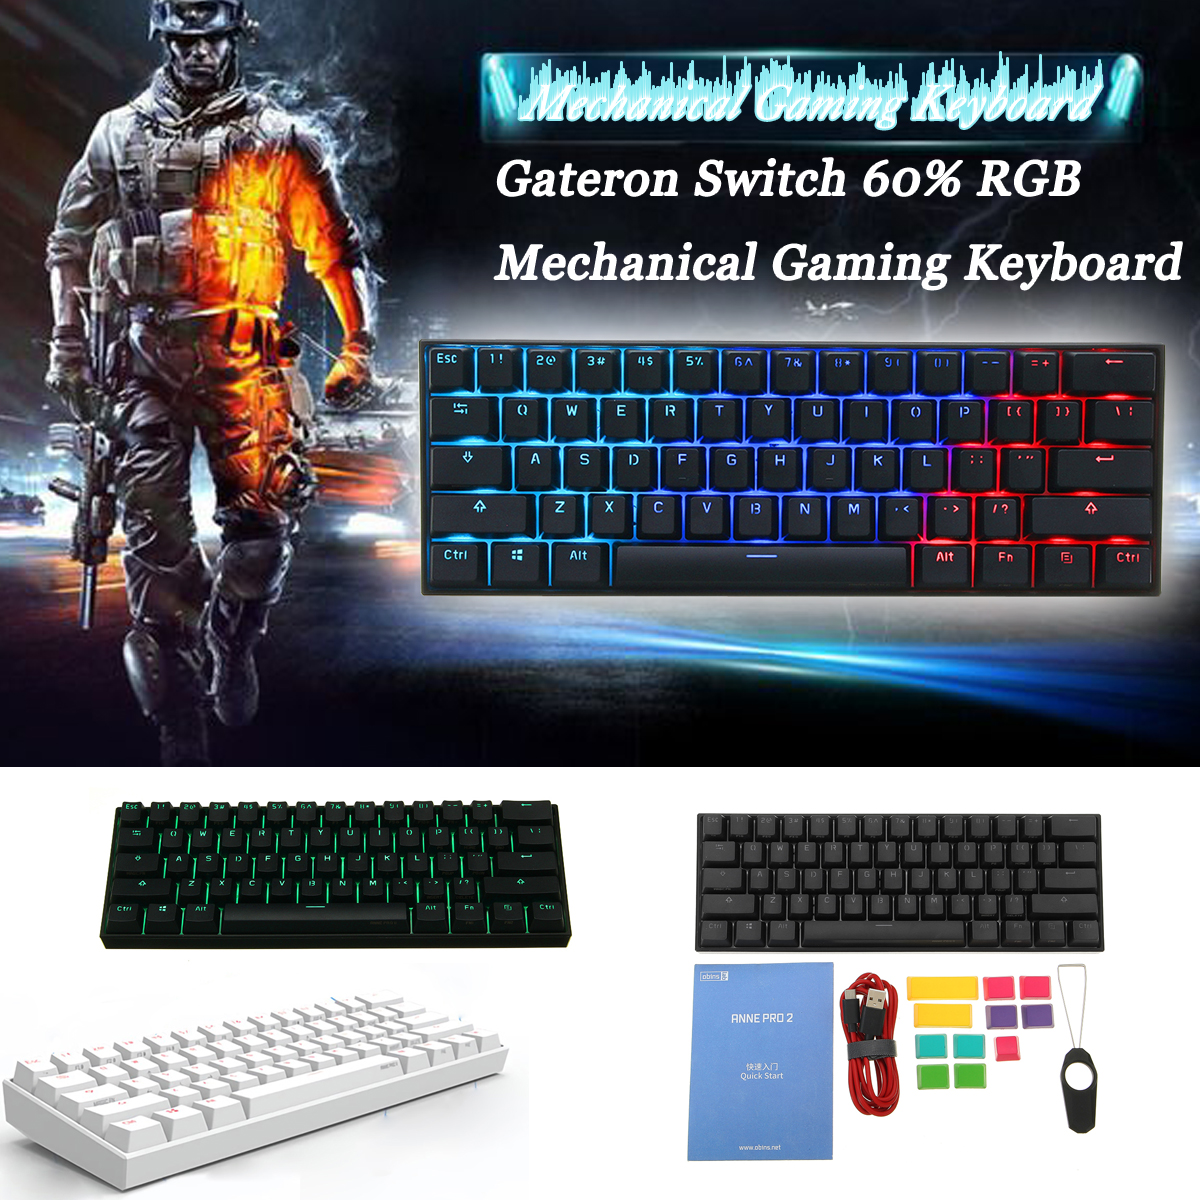 US $76 36 42% OFF|[Gateron Switch]Obins Anne Pro 2 60% NKRO bluetooth 4 0  Type C RGB Mechanical Gaming Keyboard-in Keyboards from Computer & Office  on